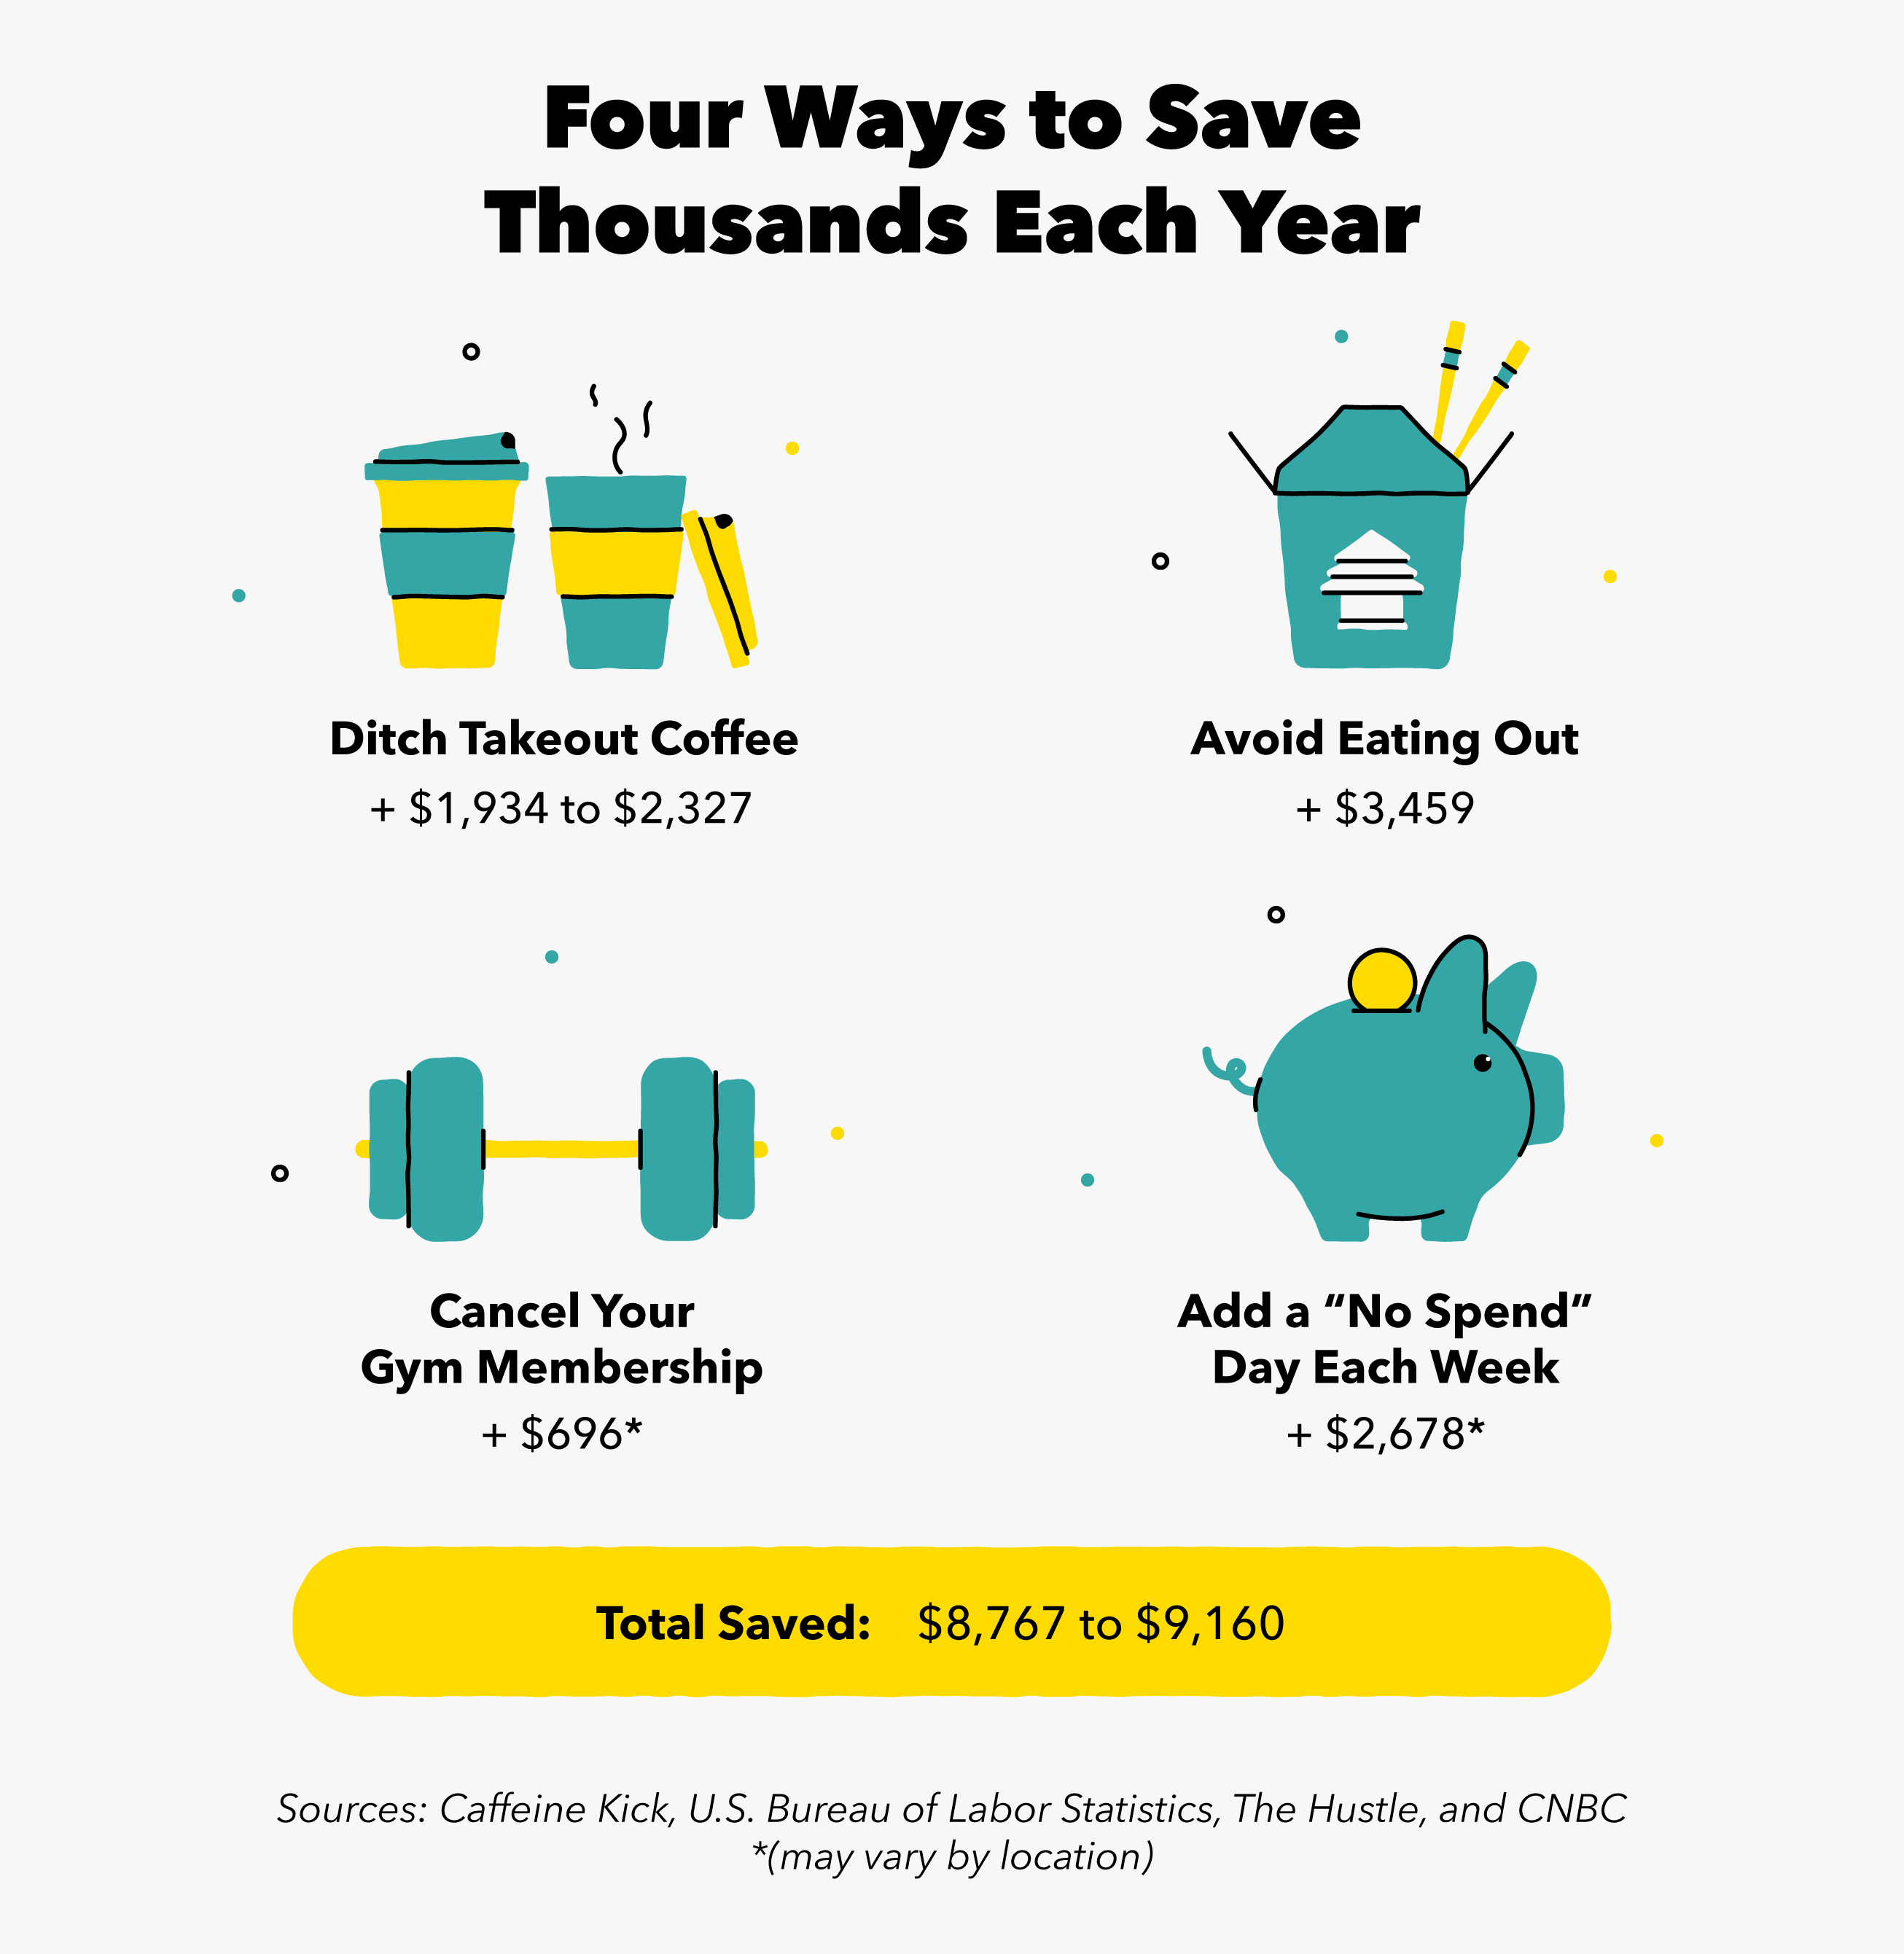 Four ways you can save thousands each year